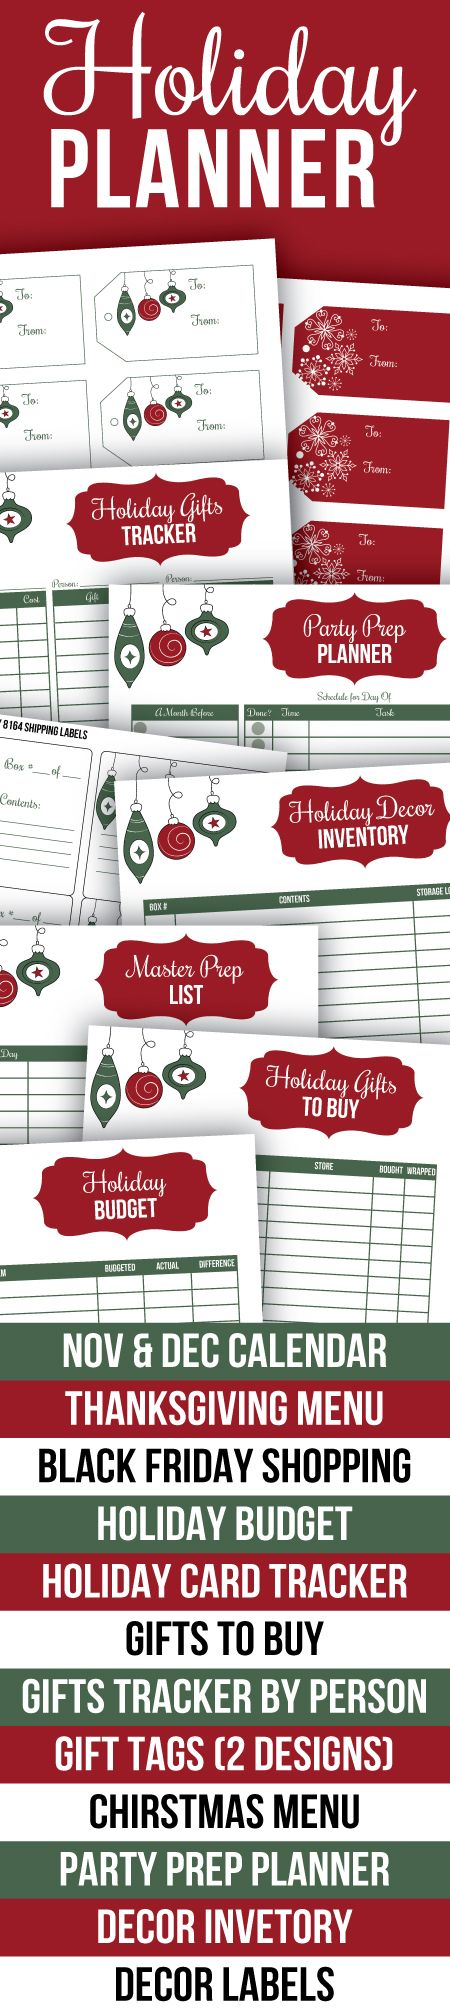 New Printable Holiday Planner  Christmas List Maker Free